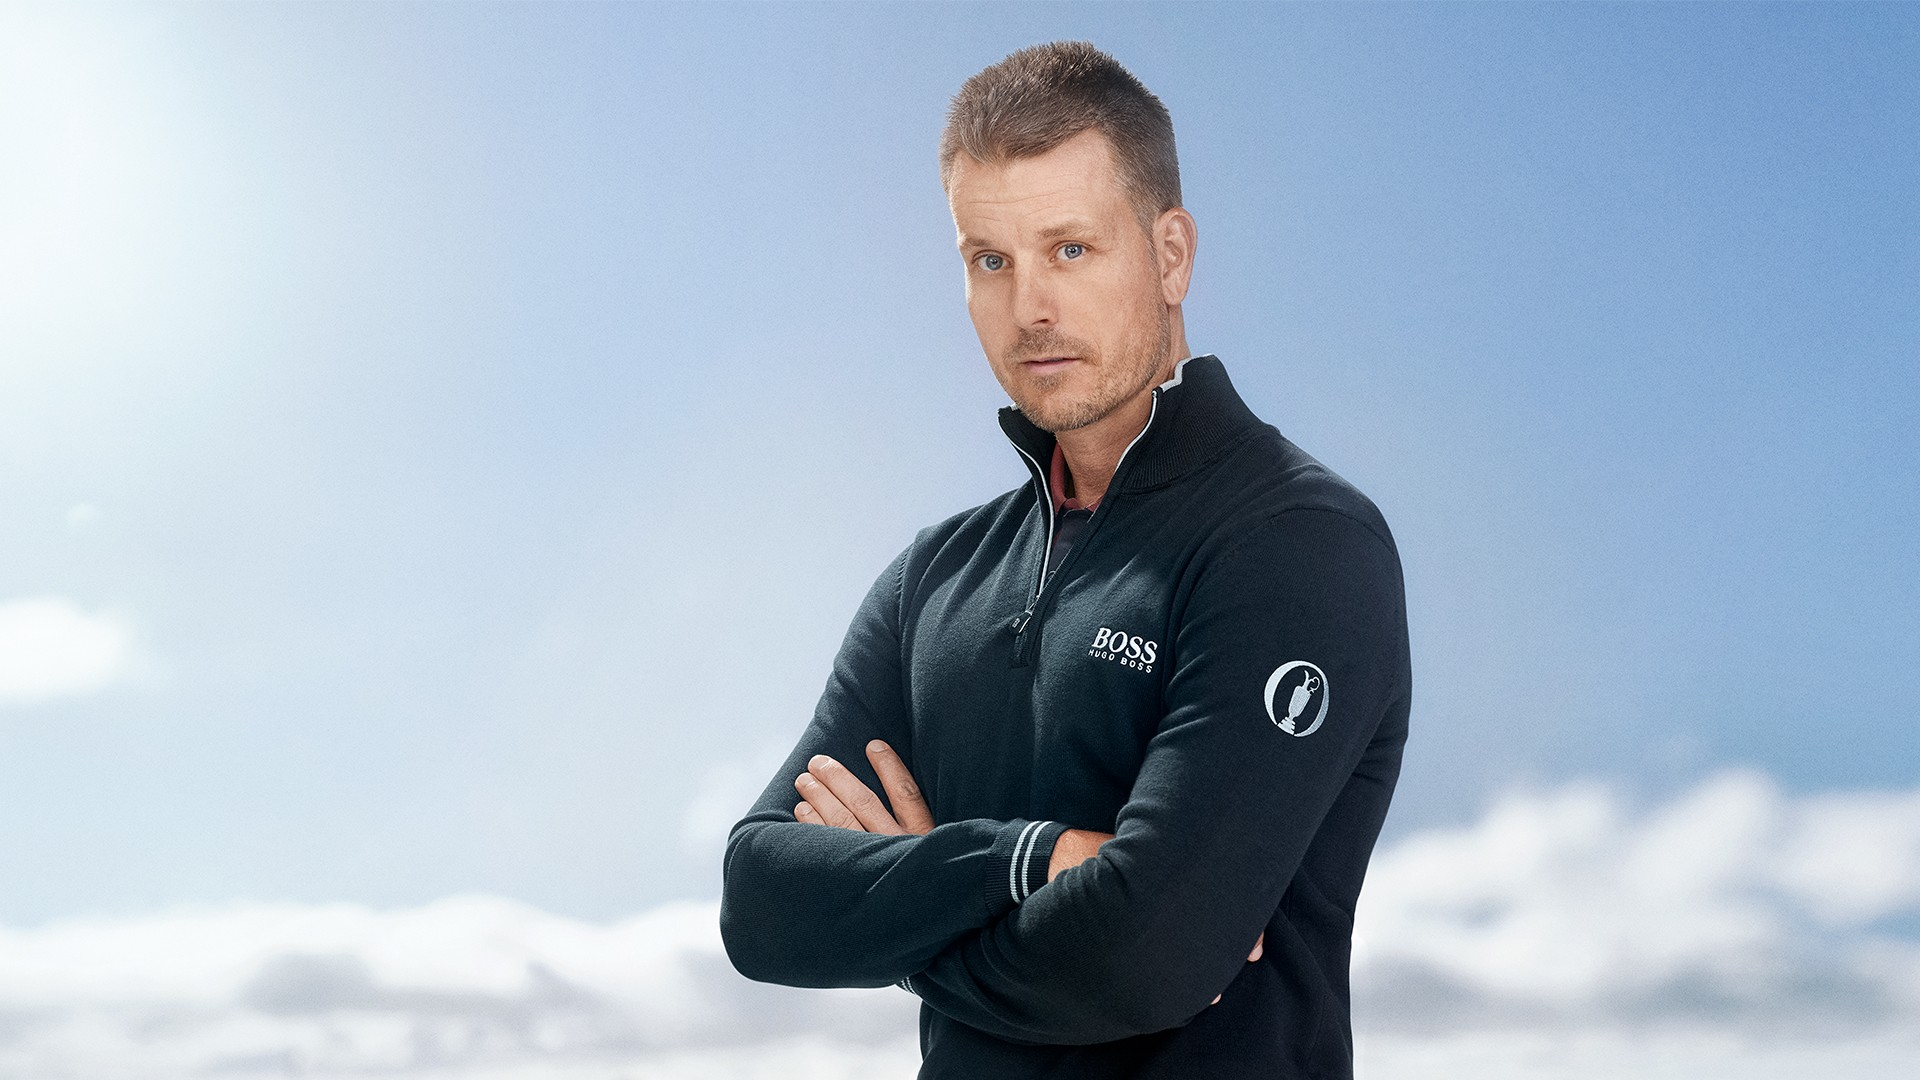 Henrik Stenson The Open 2018 – BOSS Ambassador